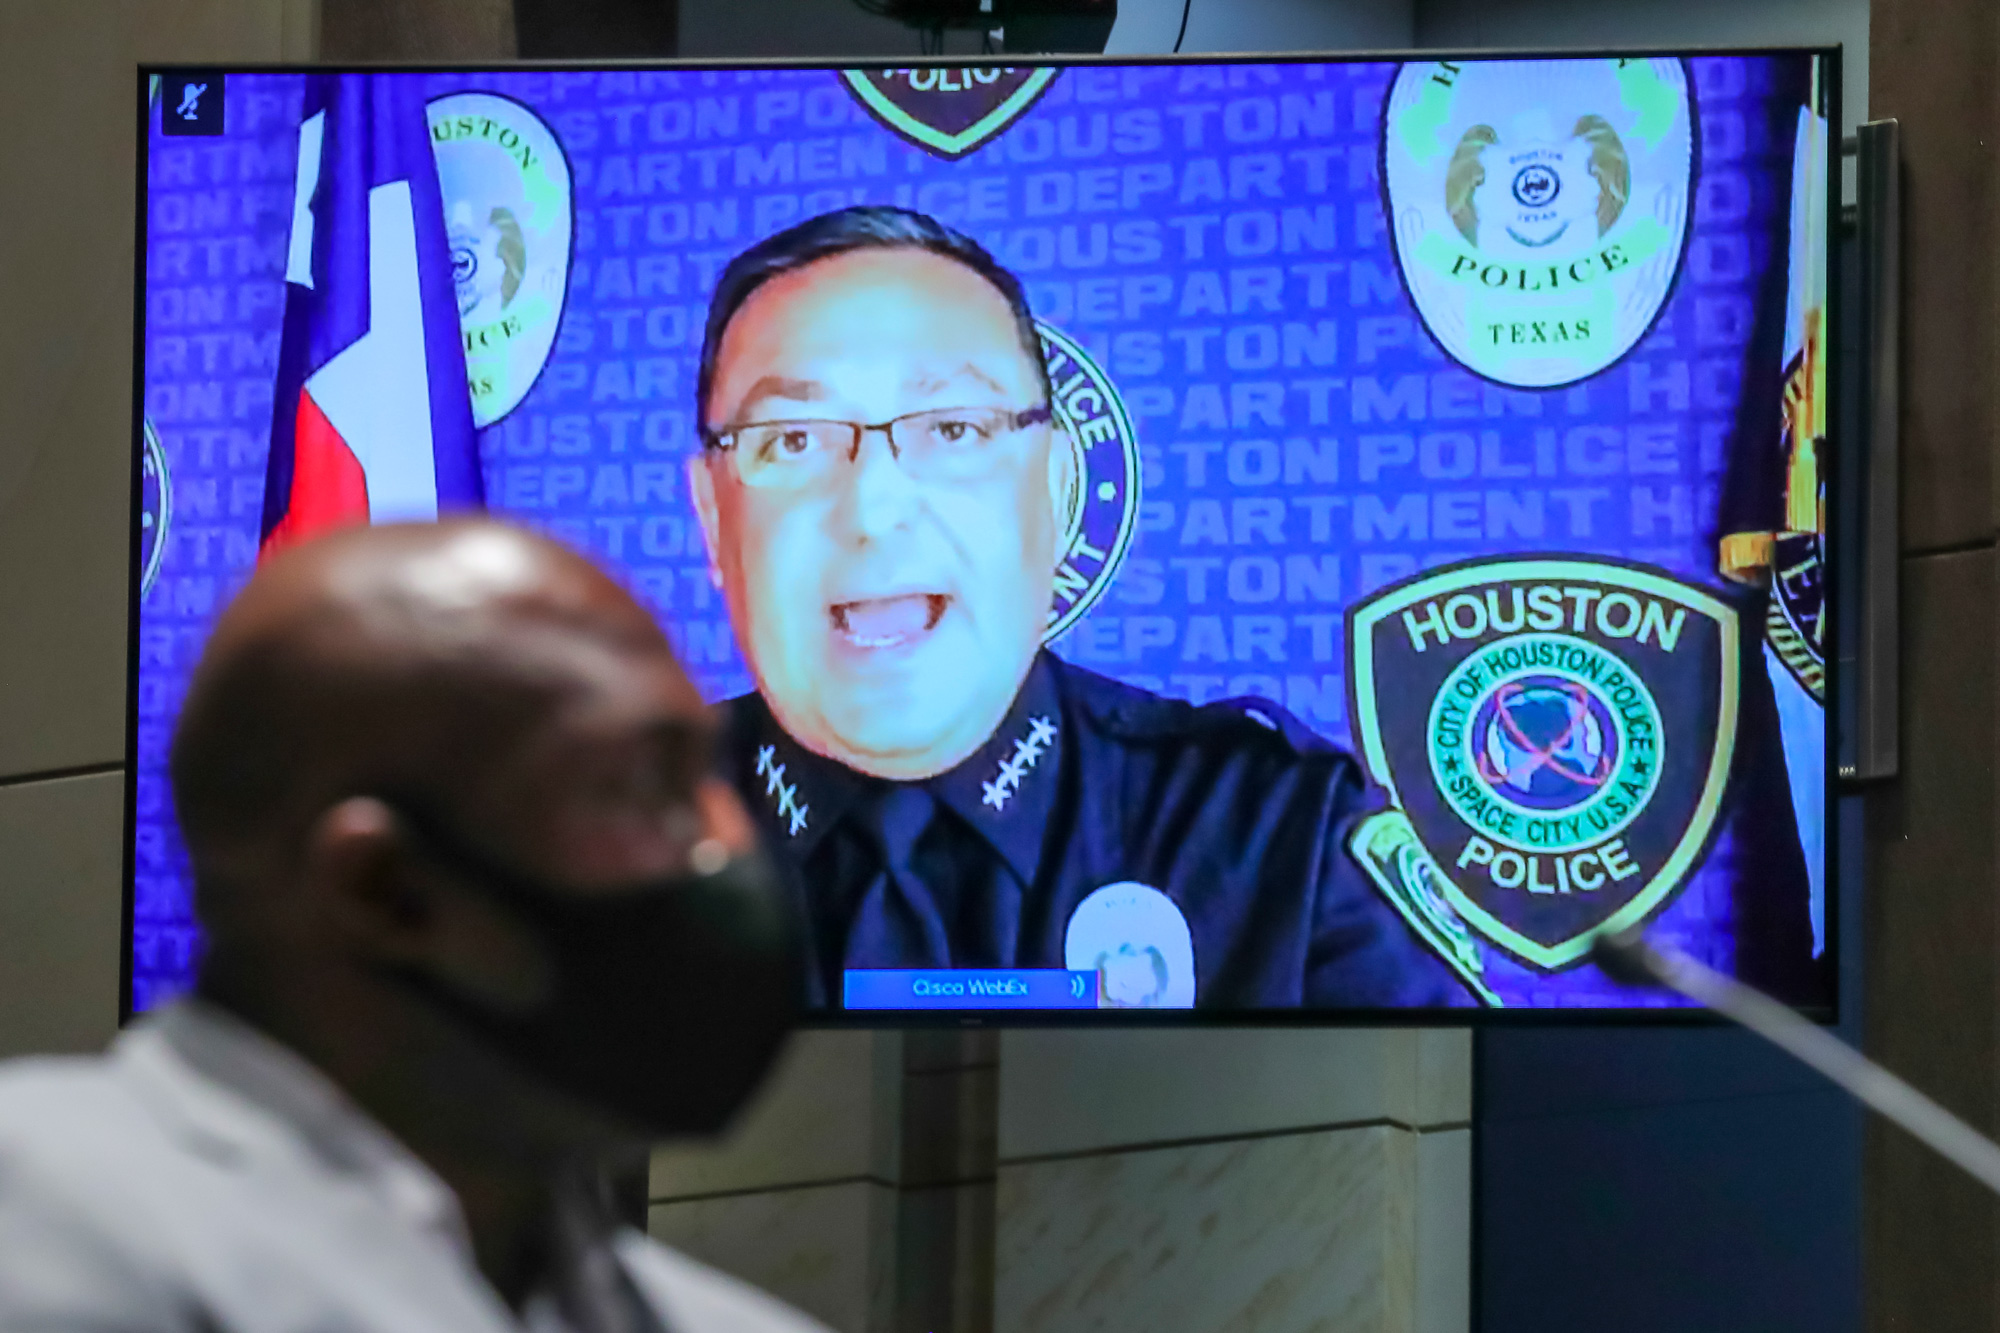 Houston Police Chief Art Acevedo gives his opening statement over video as Philonise Floyd, brother of George Floyd, listens during the House Judiciary Committee hearing on Policing Practices and Law Enforcement Accountability at the U.S. Capitol on June 10 in Washington.